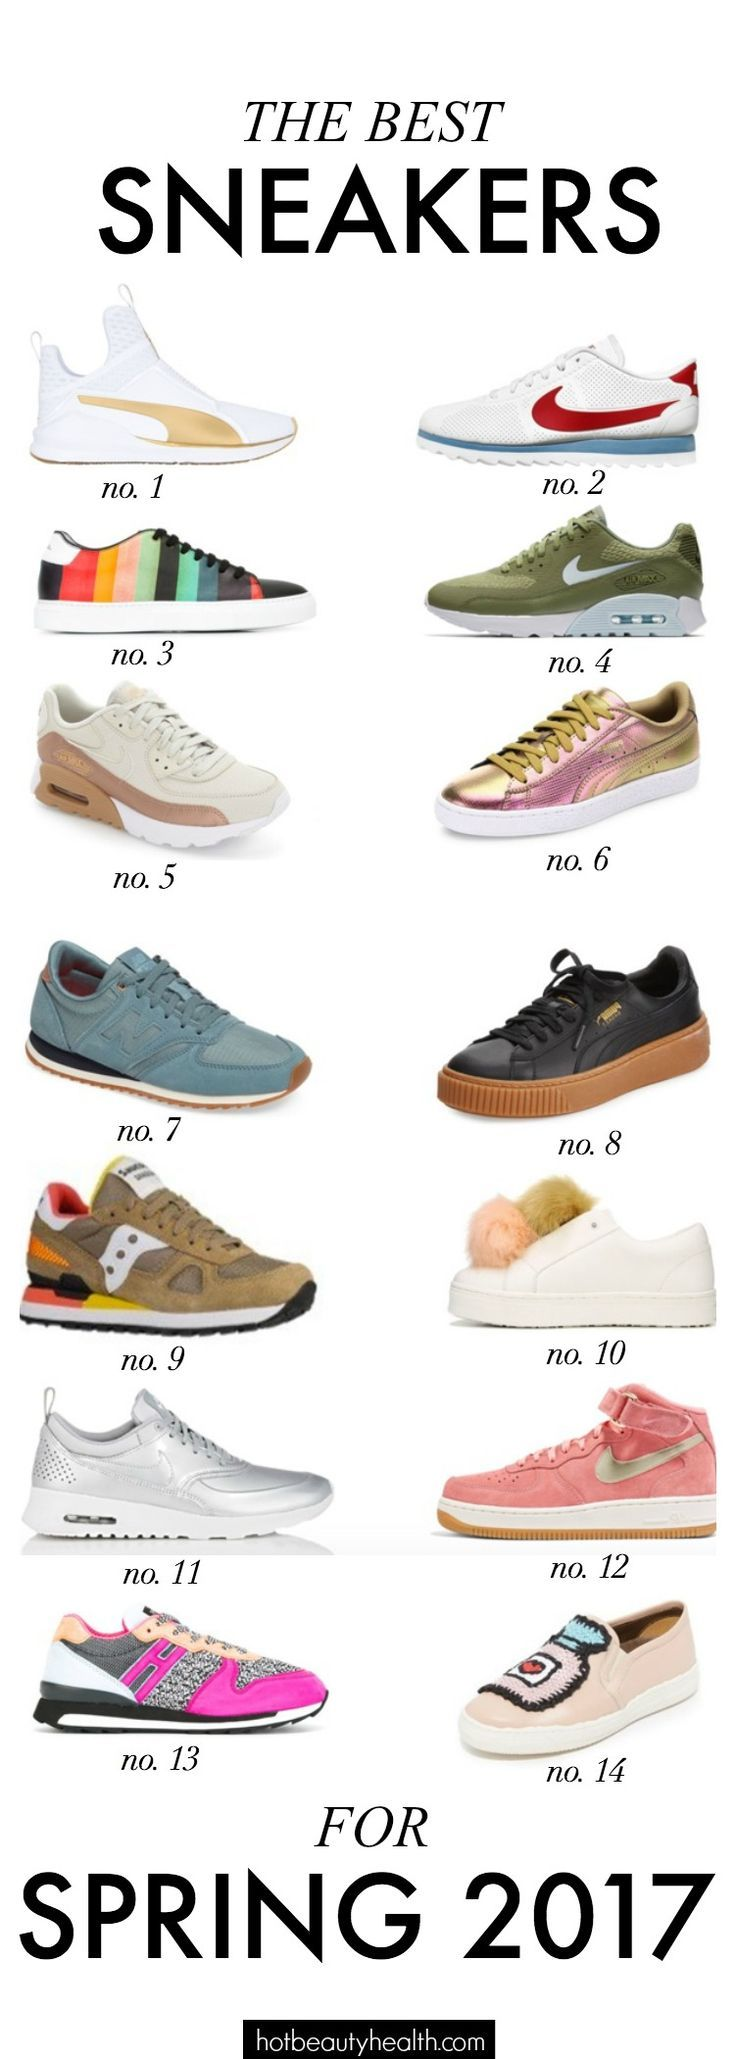 I rounded up the best women's fashion sneakers for spring 2017! Several chic looks to choose from to find your personal style.